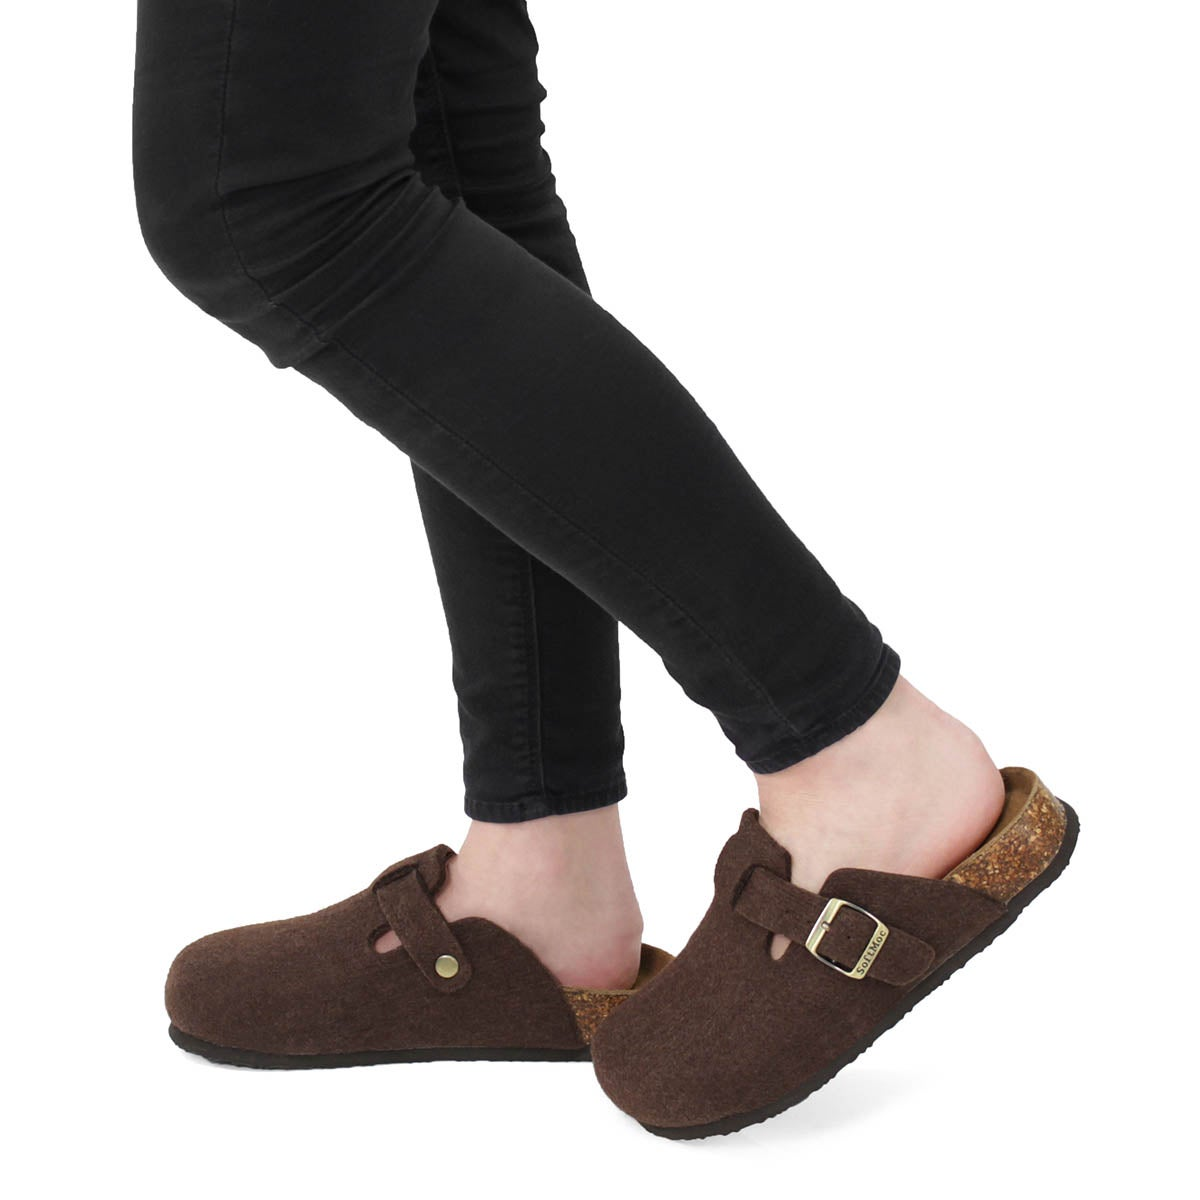 Lds Ayr 5 brown wool casual clog